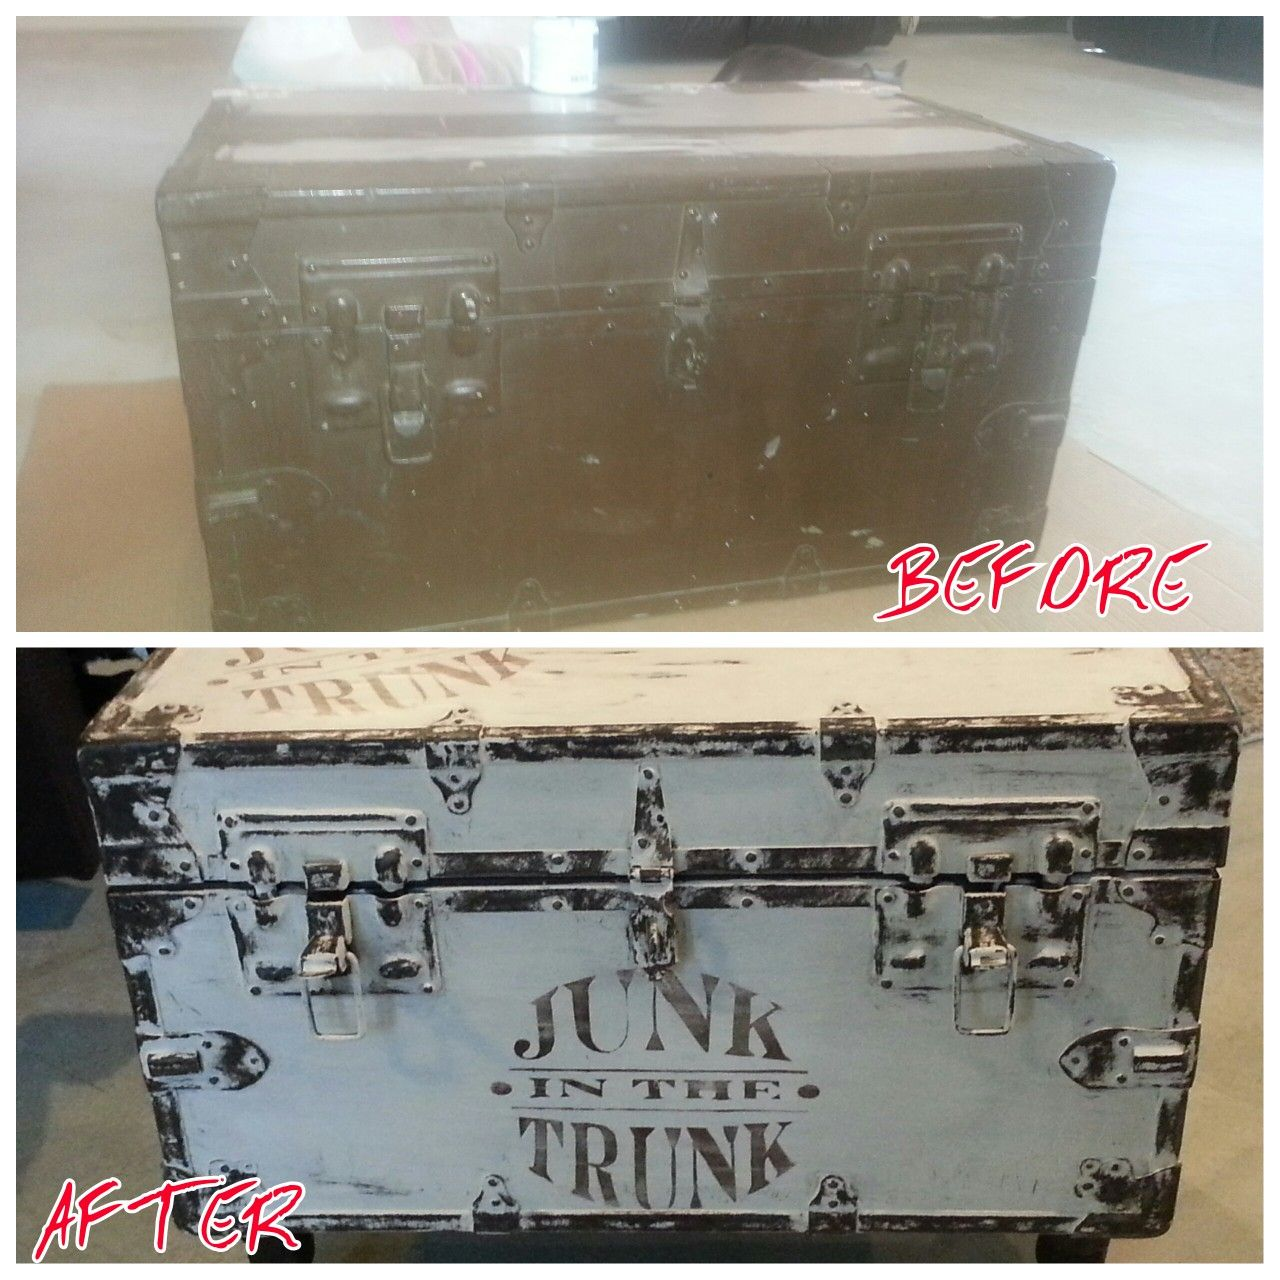 A before and after. Just chalk painted white. Then sanded areas I wanted the original color to show through. Made my own stencil JUNK IN THE TRUNK then added minwax clear wax to cover. Oh I also added short wood legs in with dark walnut stain.